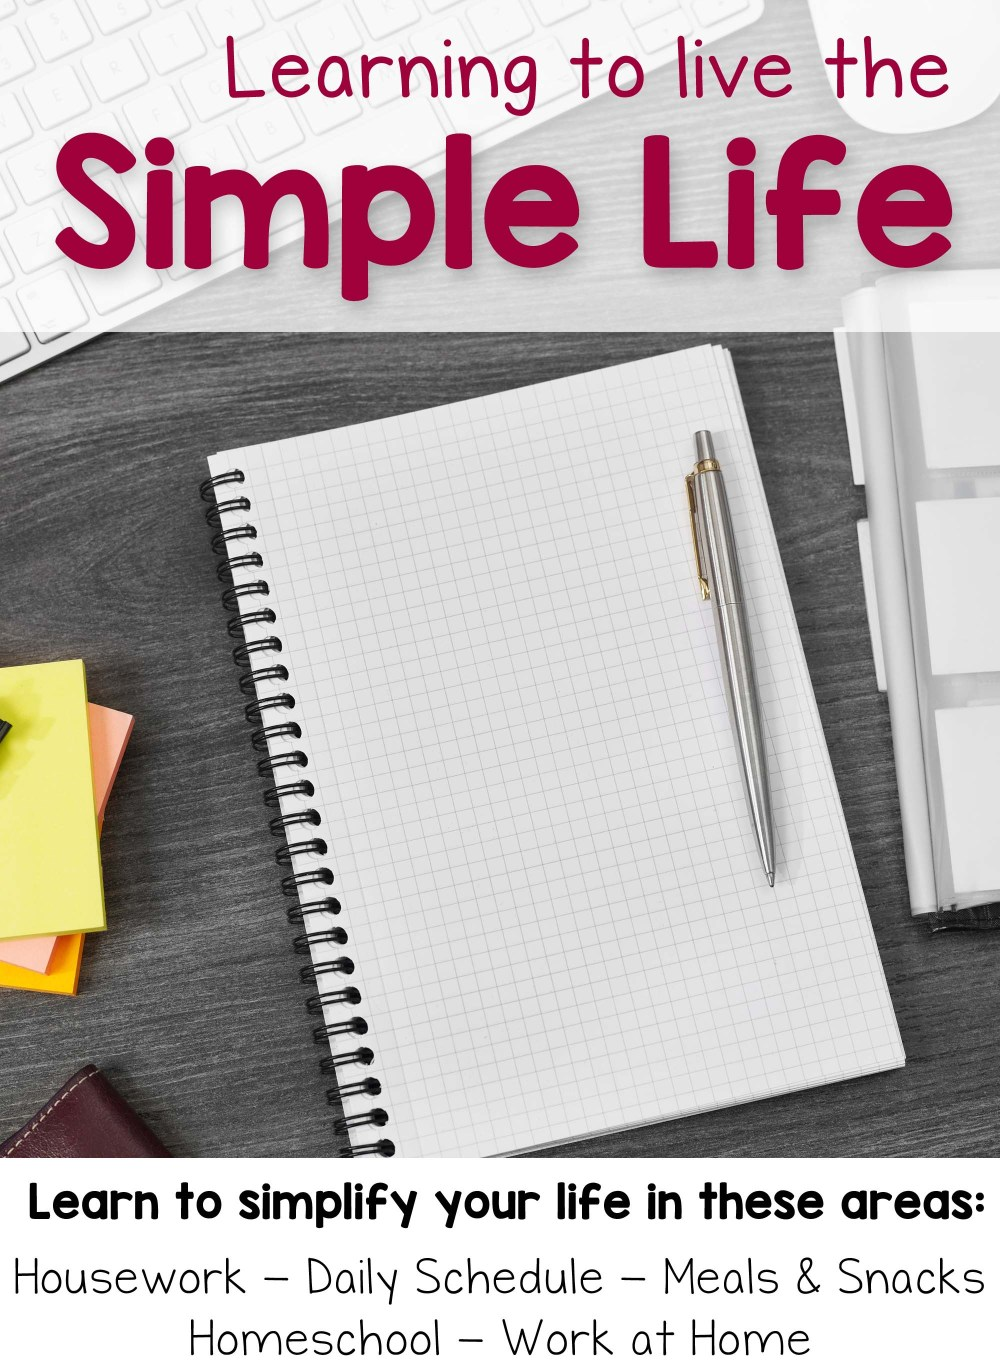 Learning to Live the Simple Life: Housework, Daily Schedule, Meals & Snacks, Homeschool, Work at Hom